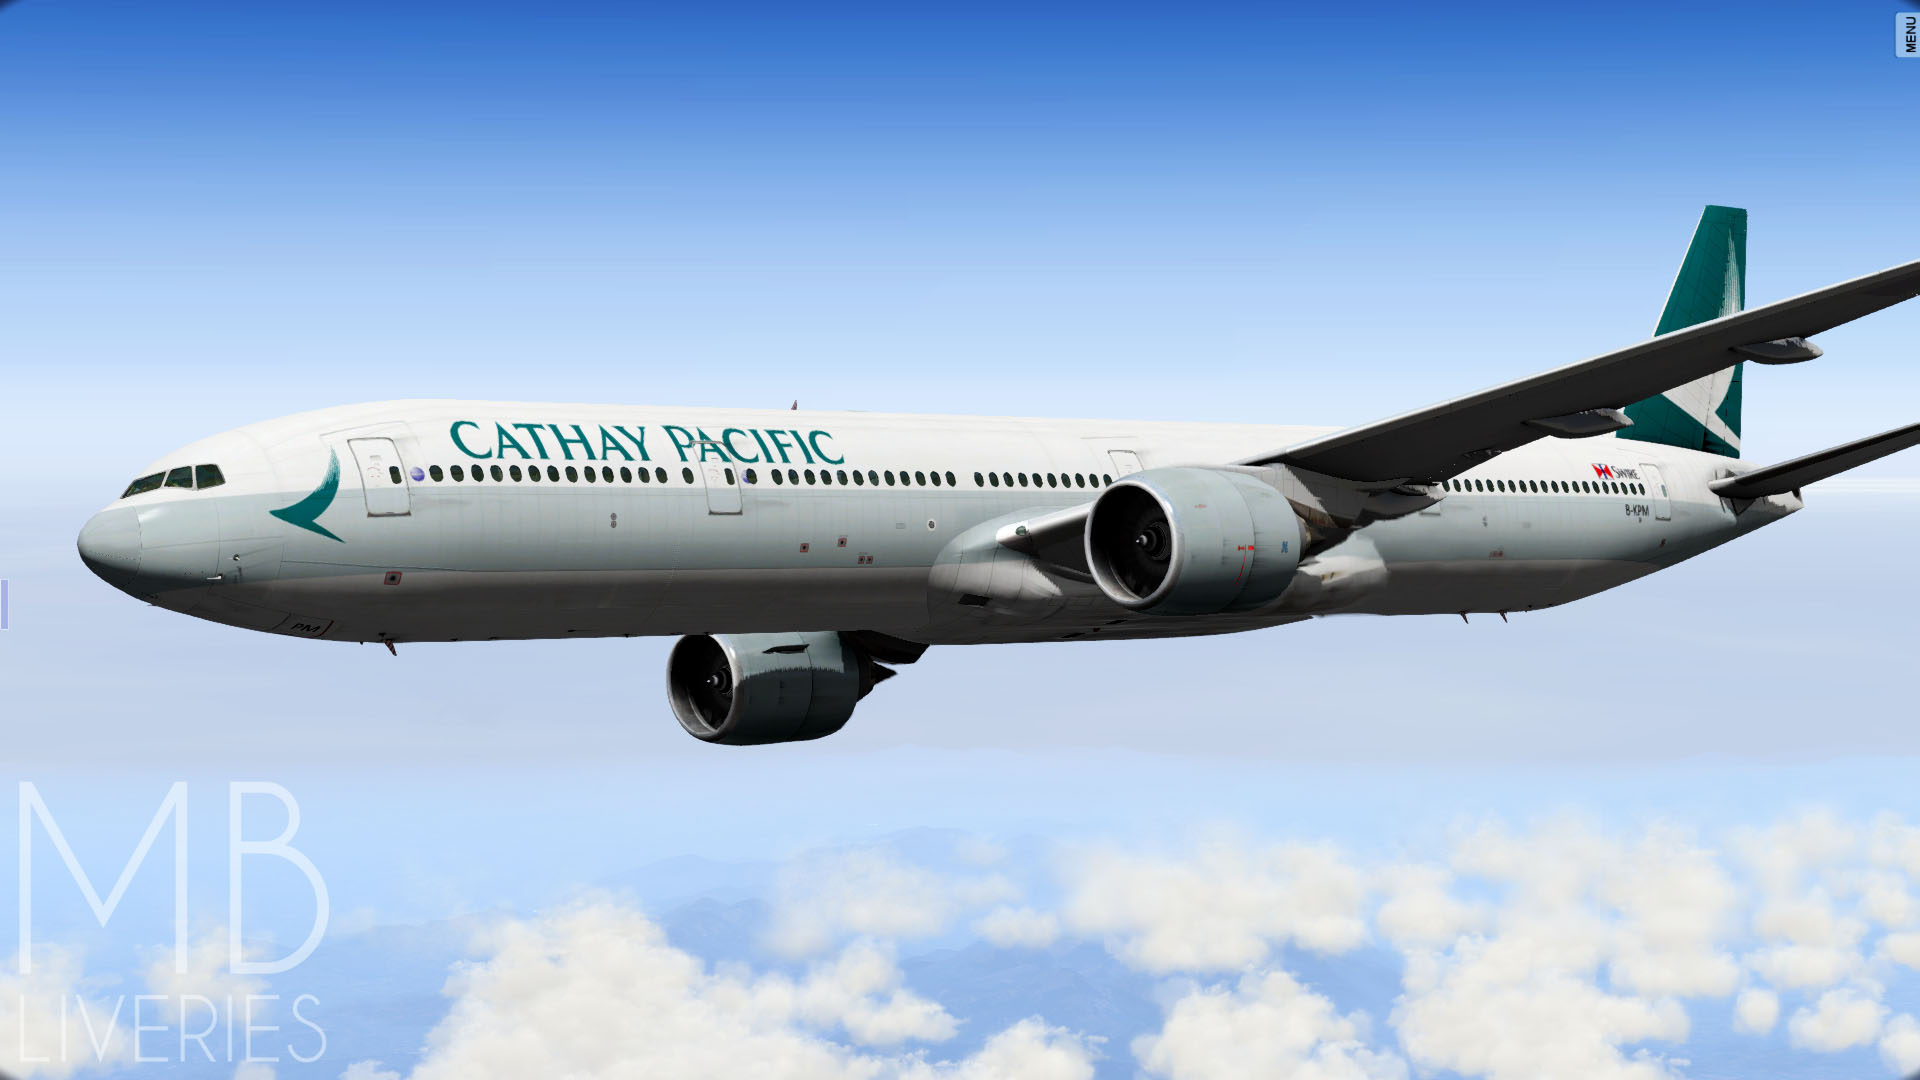 Cathay Pacific (New) - Boeing 777-300ER - Aircraft Skins - Liveries